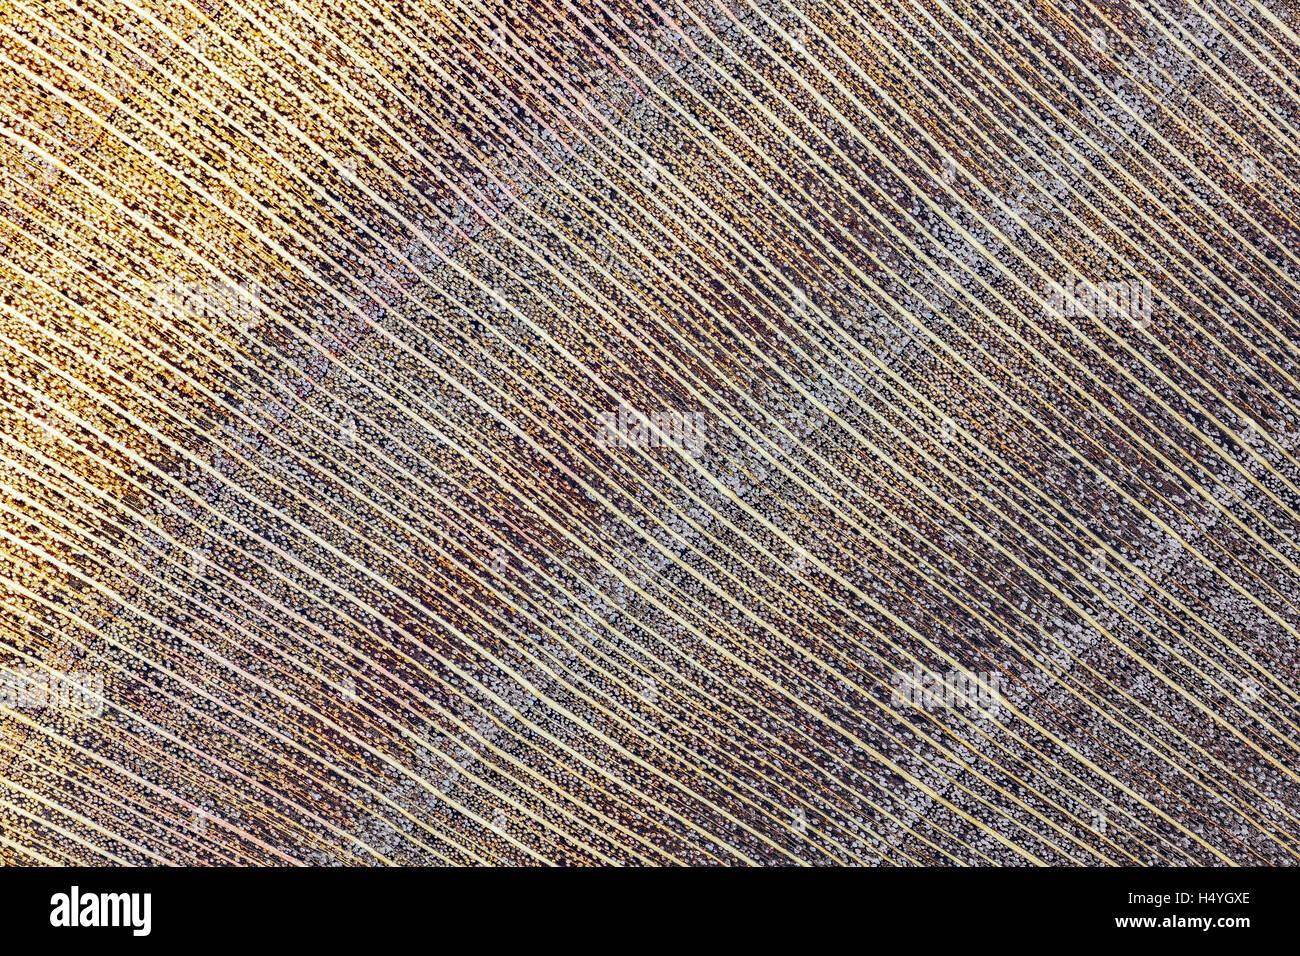 Apple, apple wood, polished, cross section of the trunk, photomicrograph, doubled in size - Stock Image